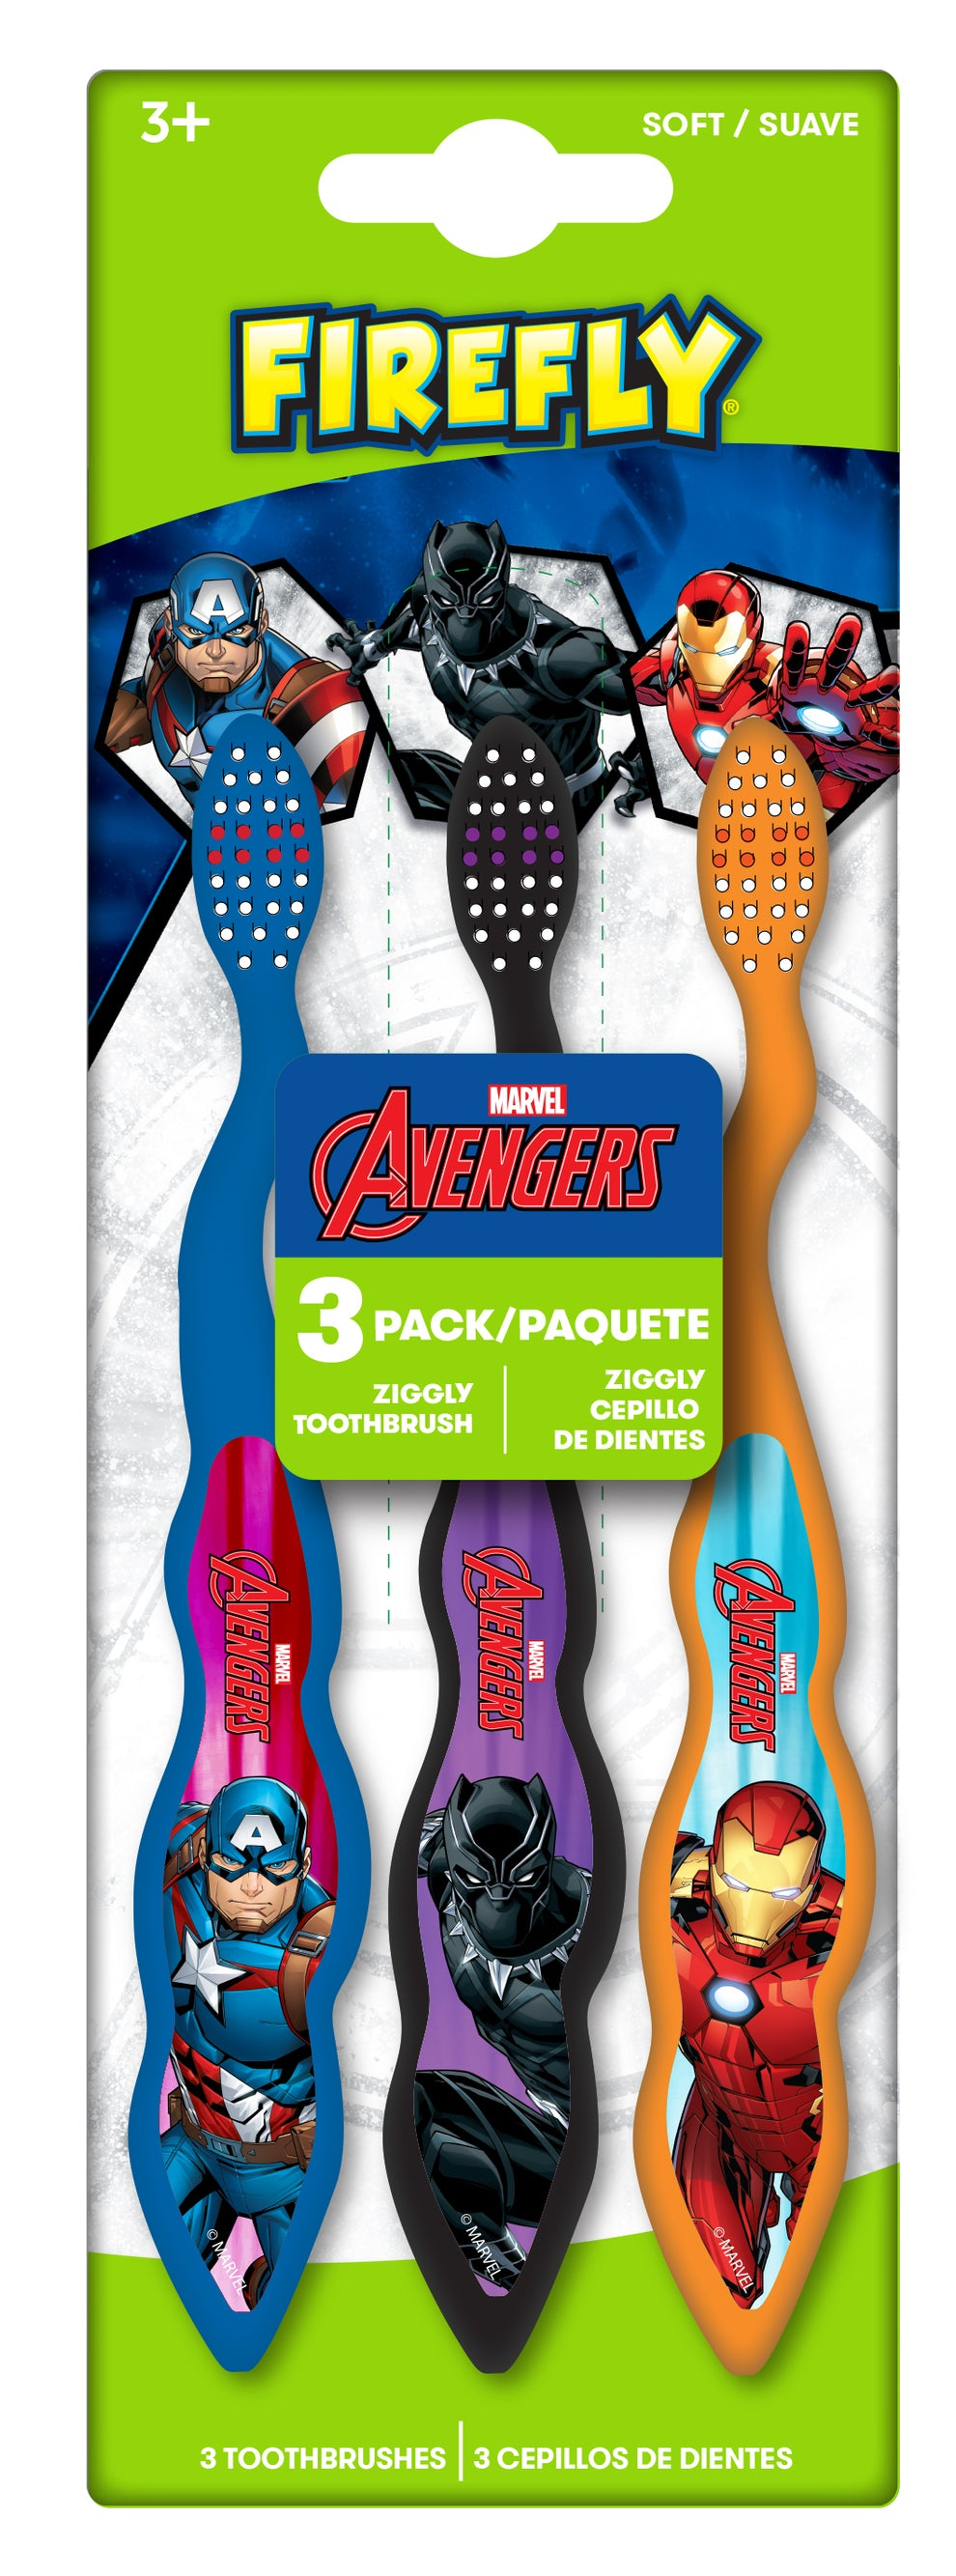 Firefly Value Pack Avengers 3 Count Toothbrushes